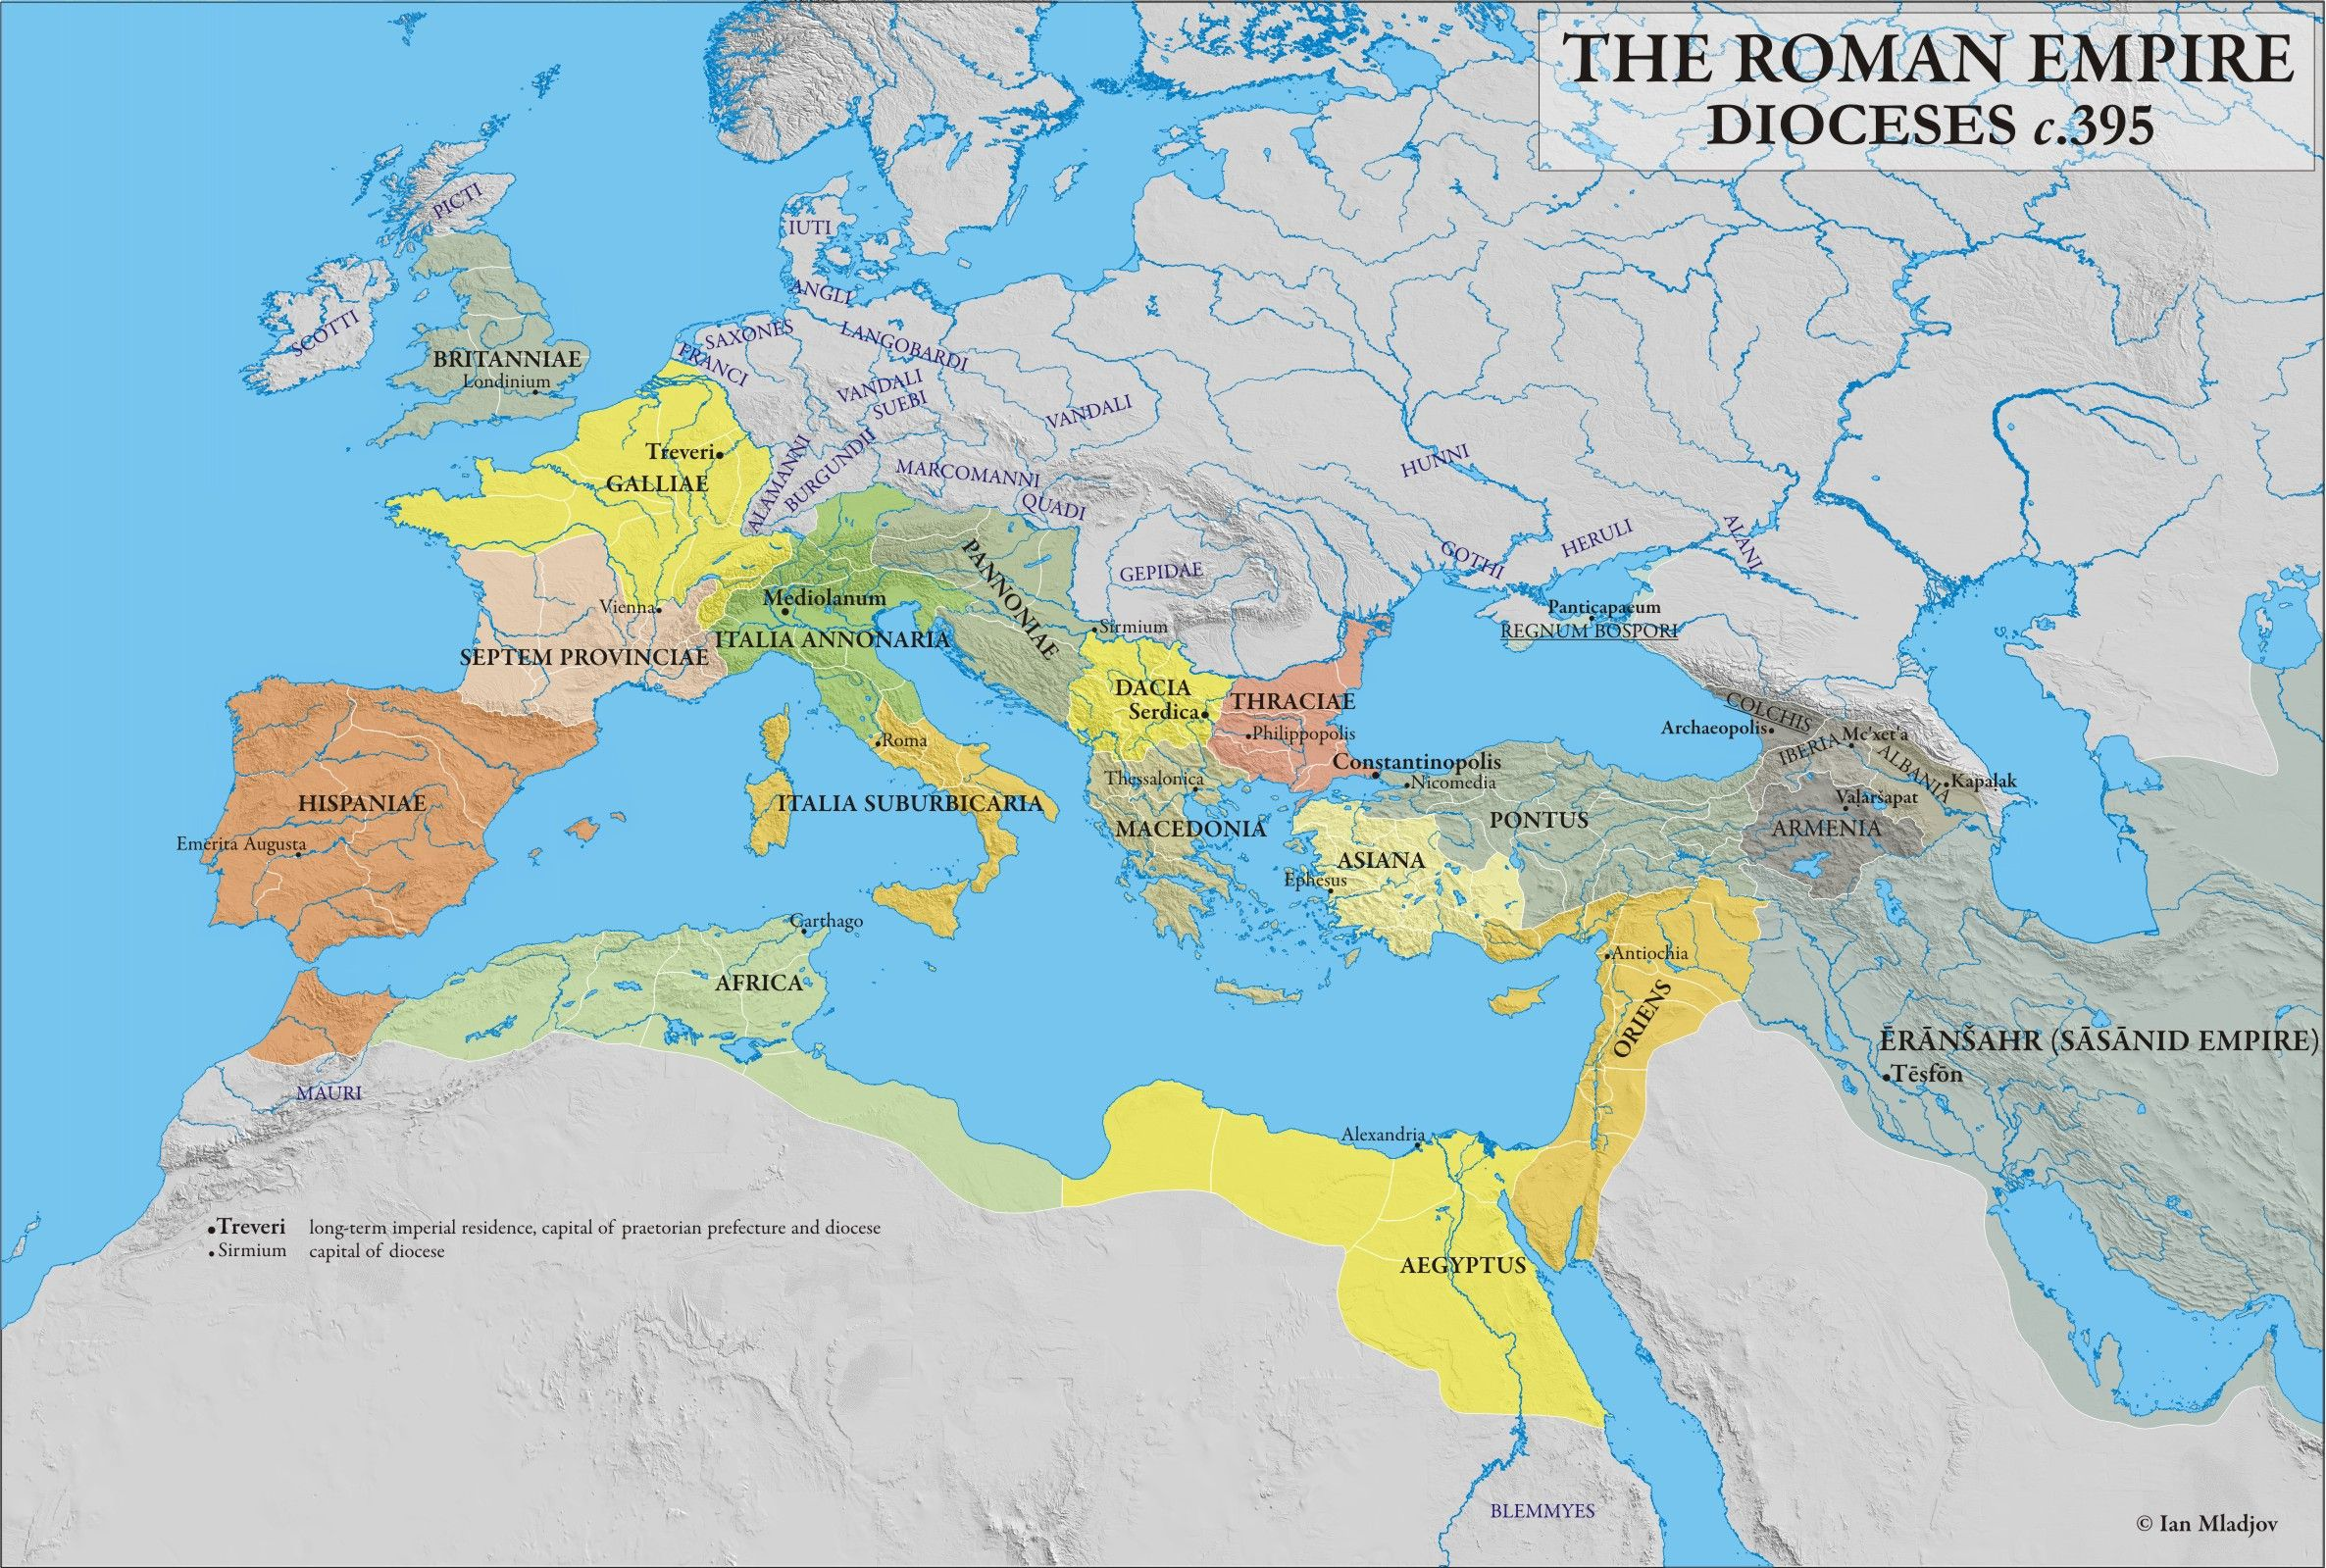 c. 395 CE) Dioceses of the Roman Empire | Maps, Charts, Graphs ...